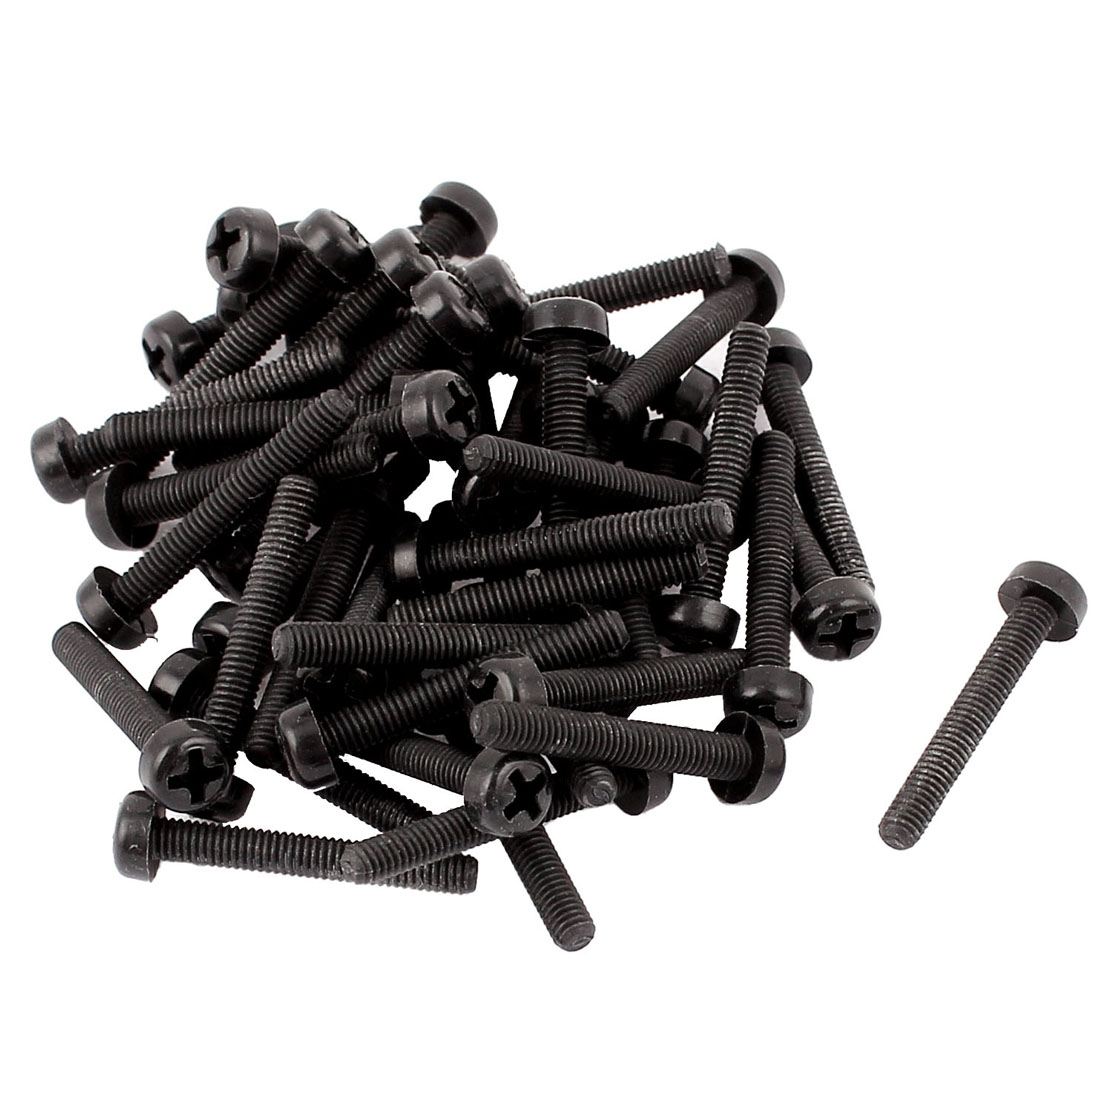 M3 x 20mm Nylon Phillips Cross Pan Head Machine Screws Black 50 PCS